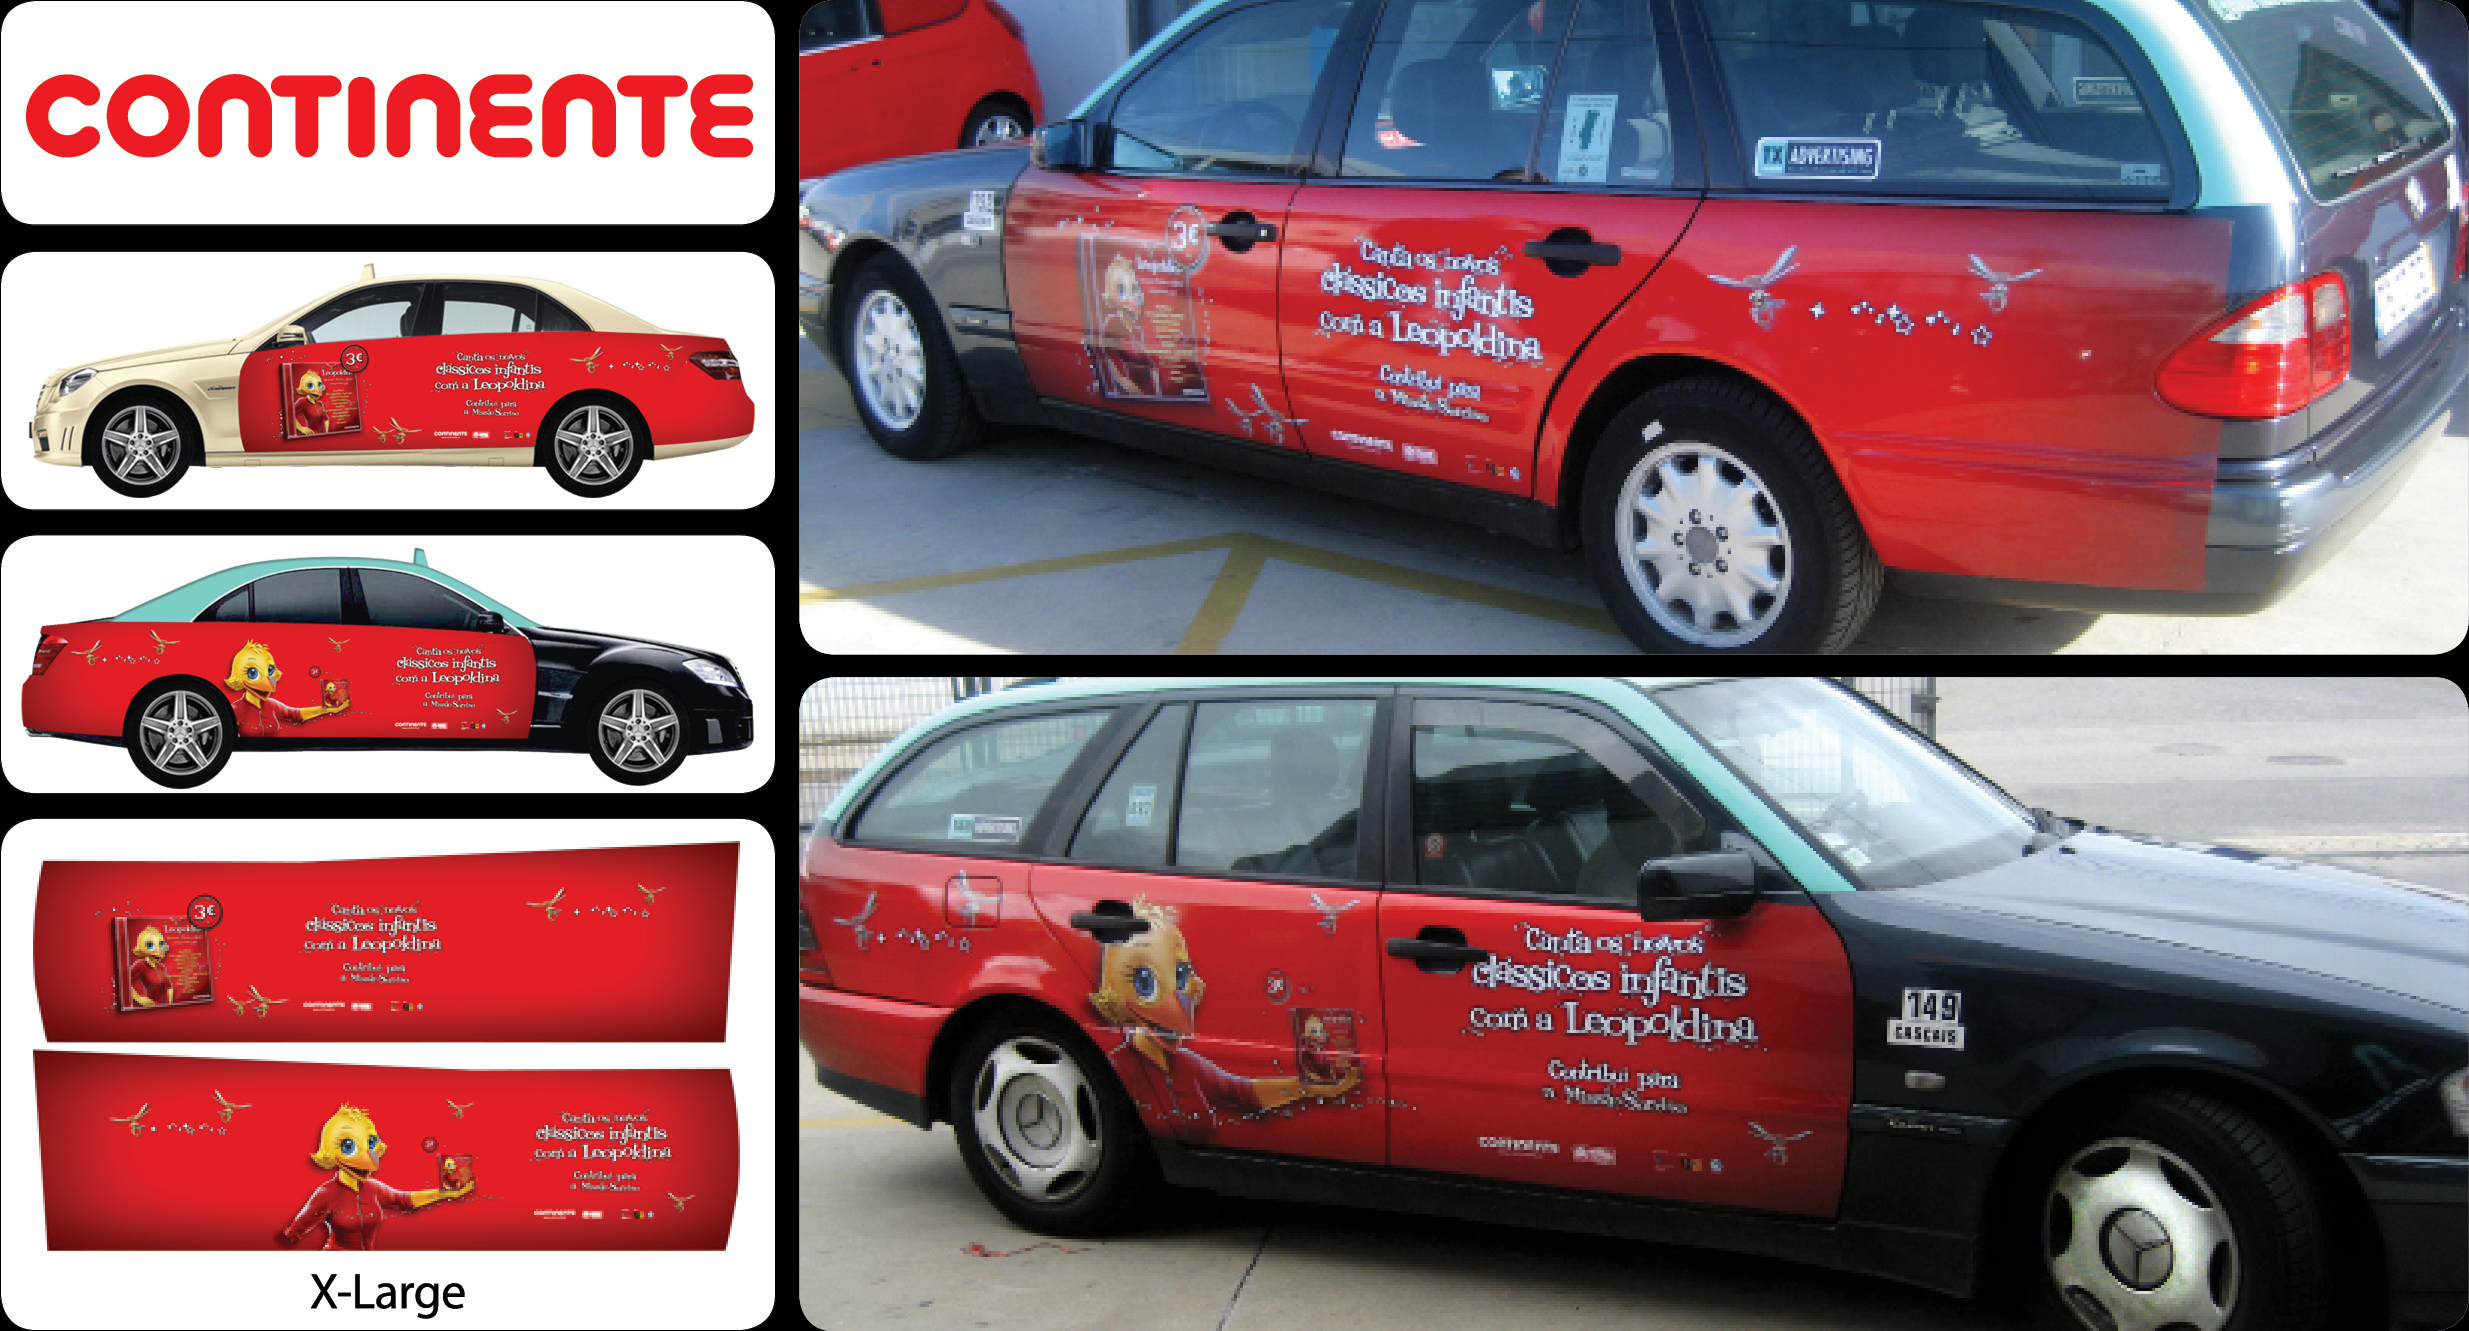 http://www.taxiadvertising.pt/wp-content/uploads/2011/01/clienteleopoldina111.jpg